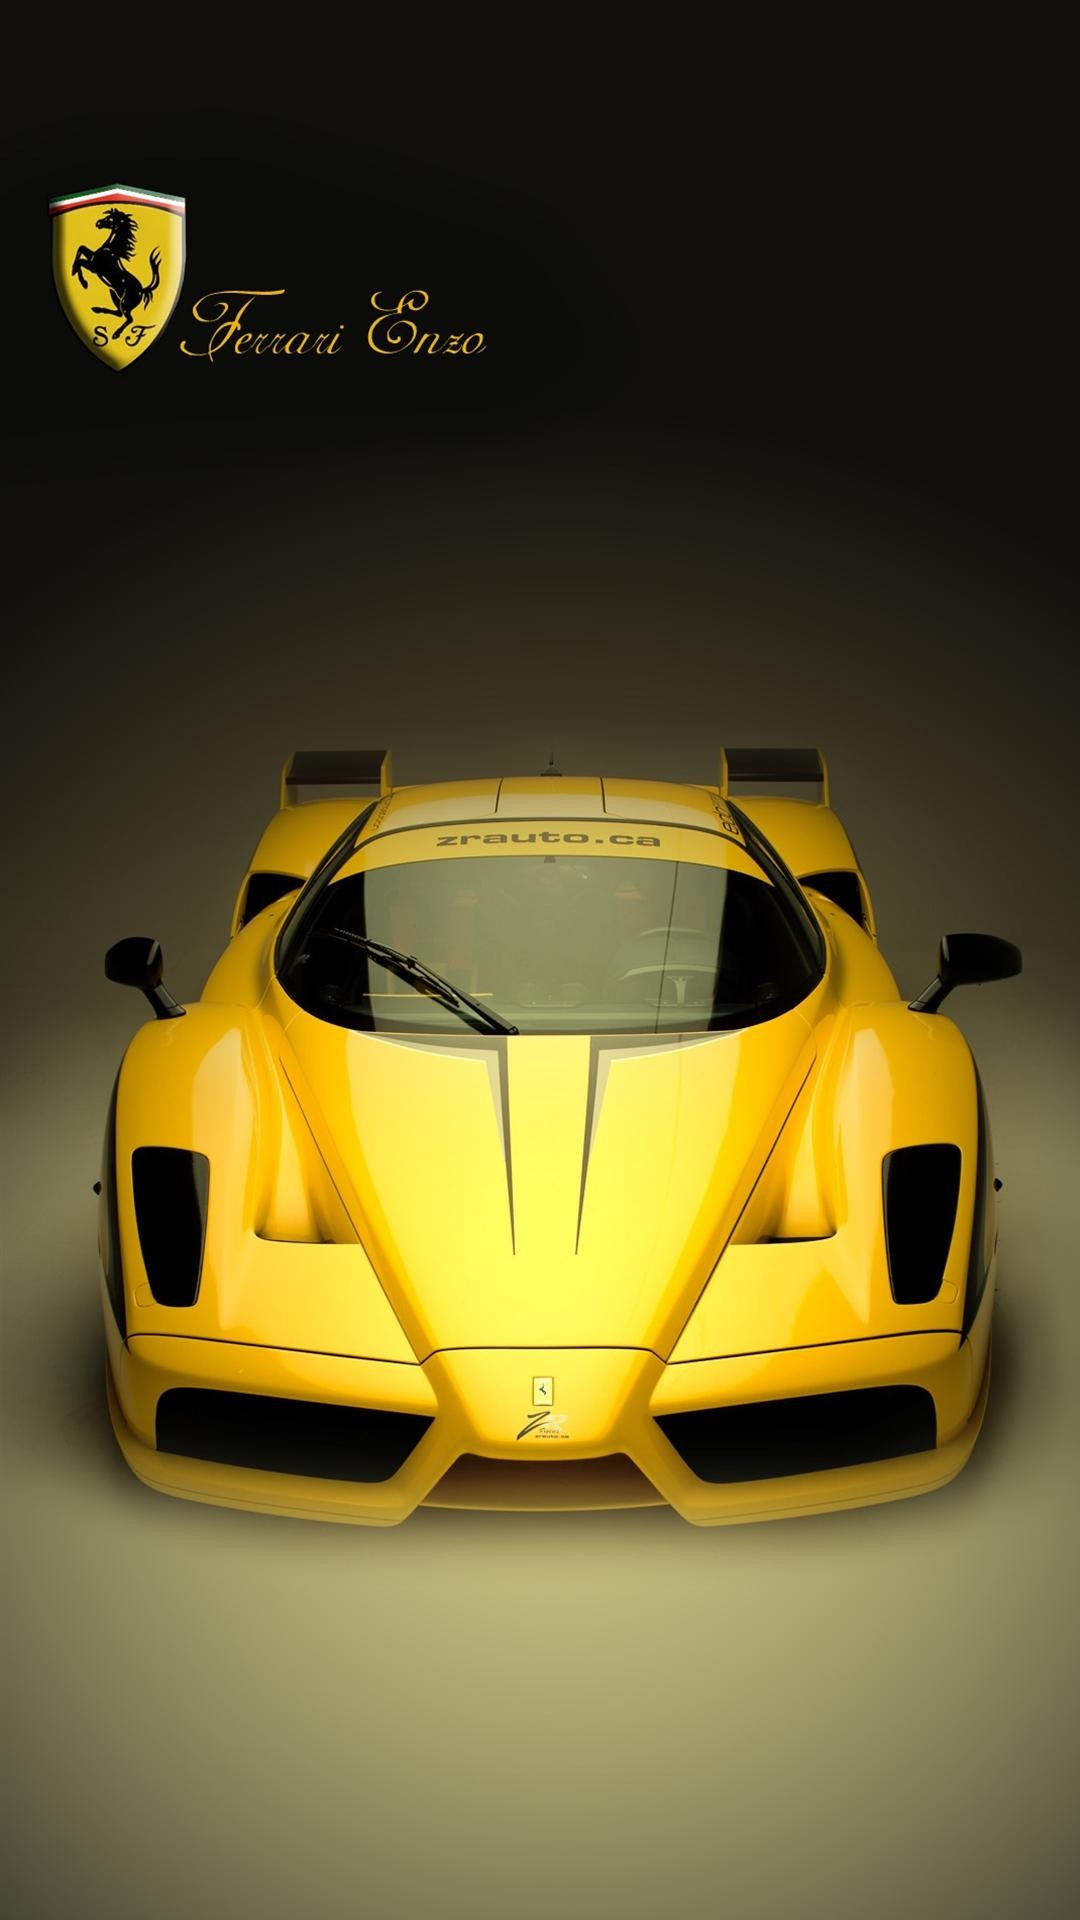 Ferrari Enzo Best Htc One Wallpapers Free And Easy To Download